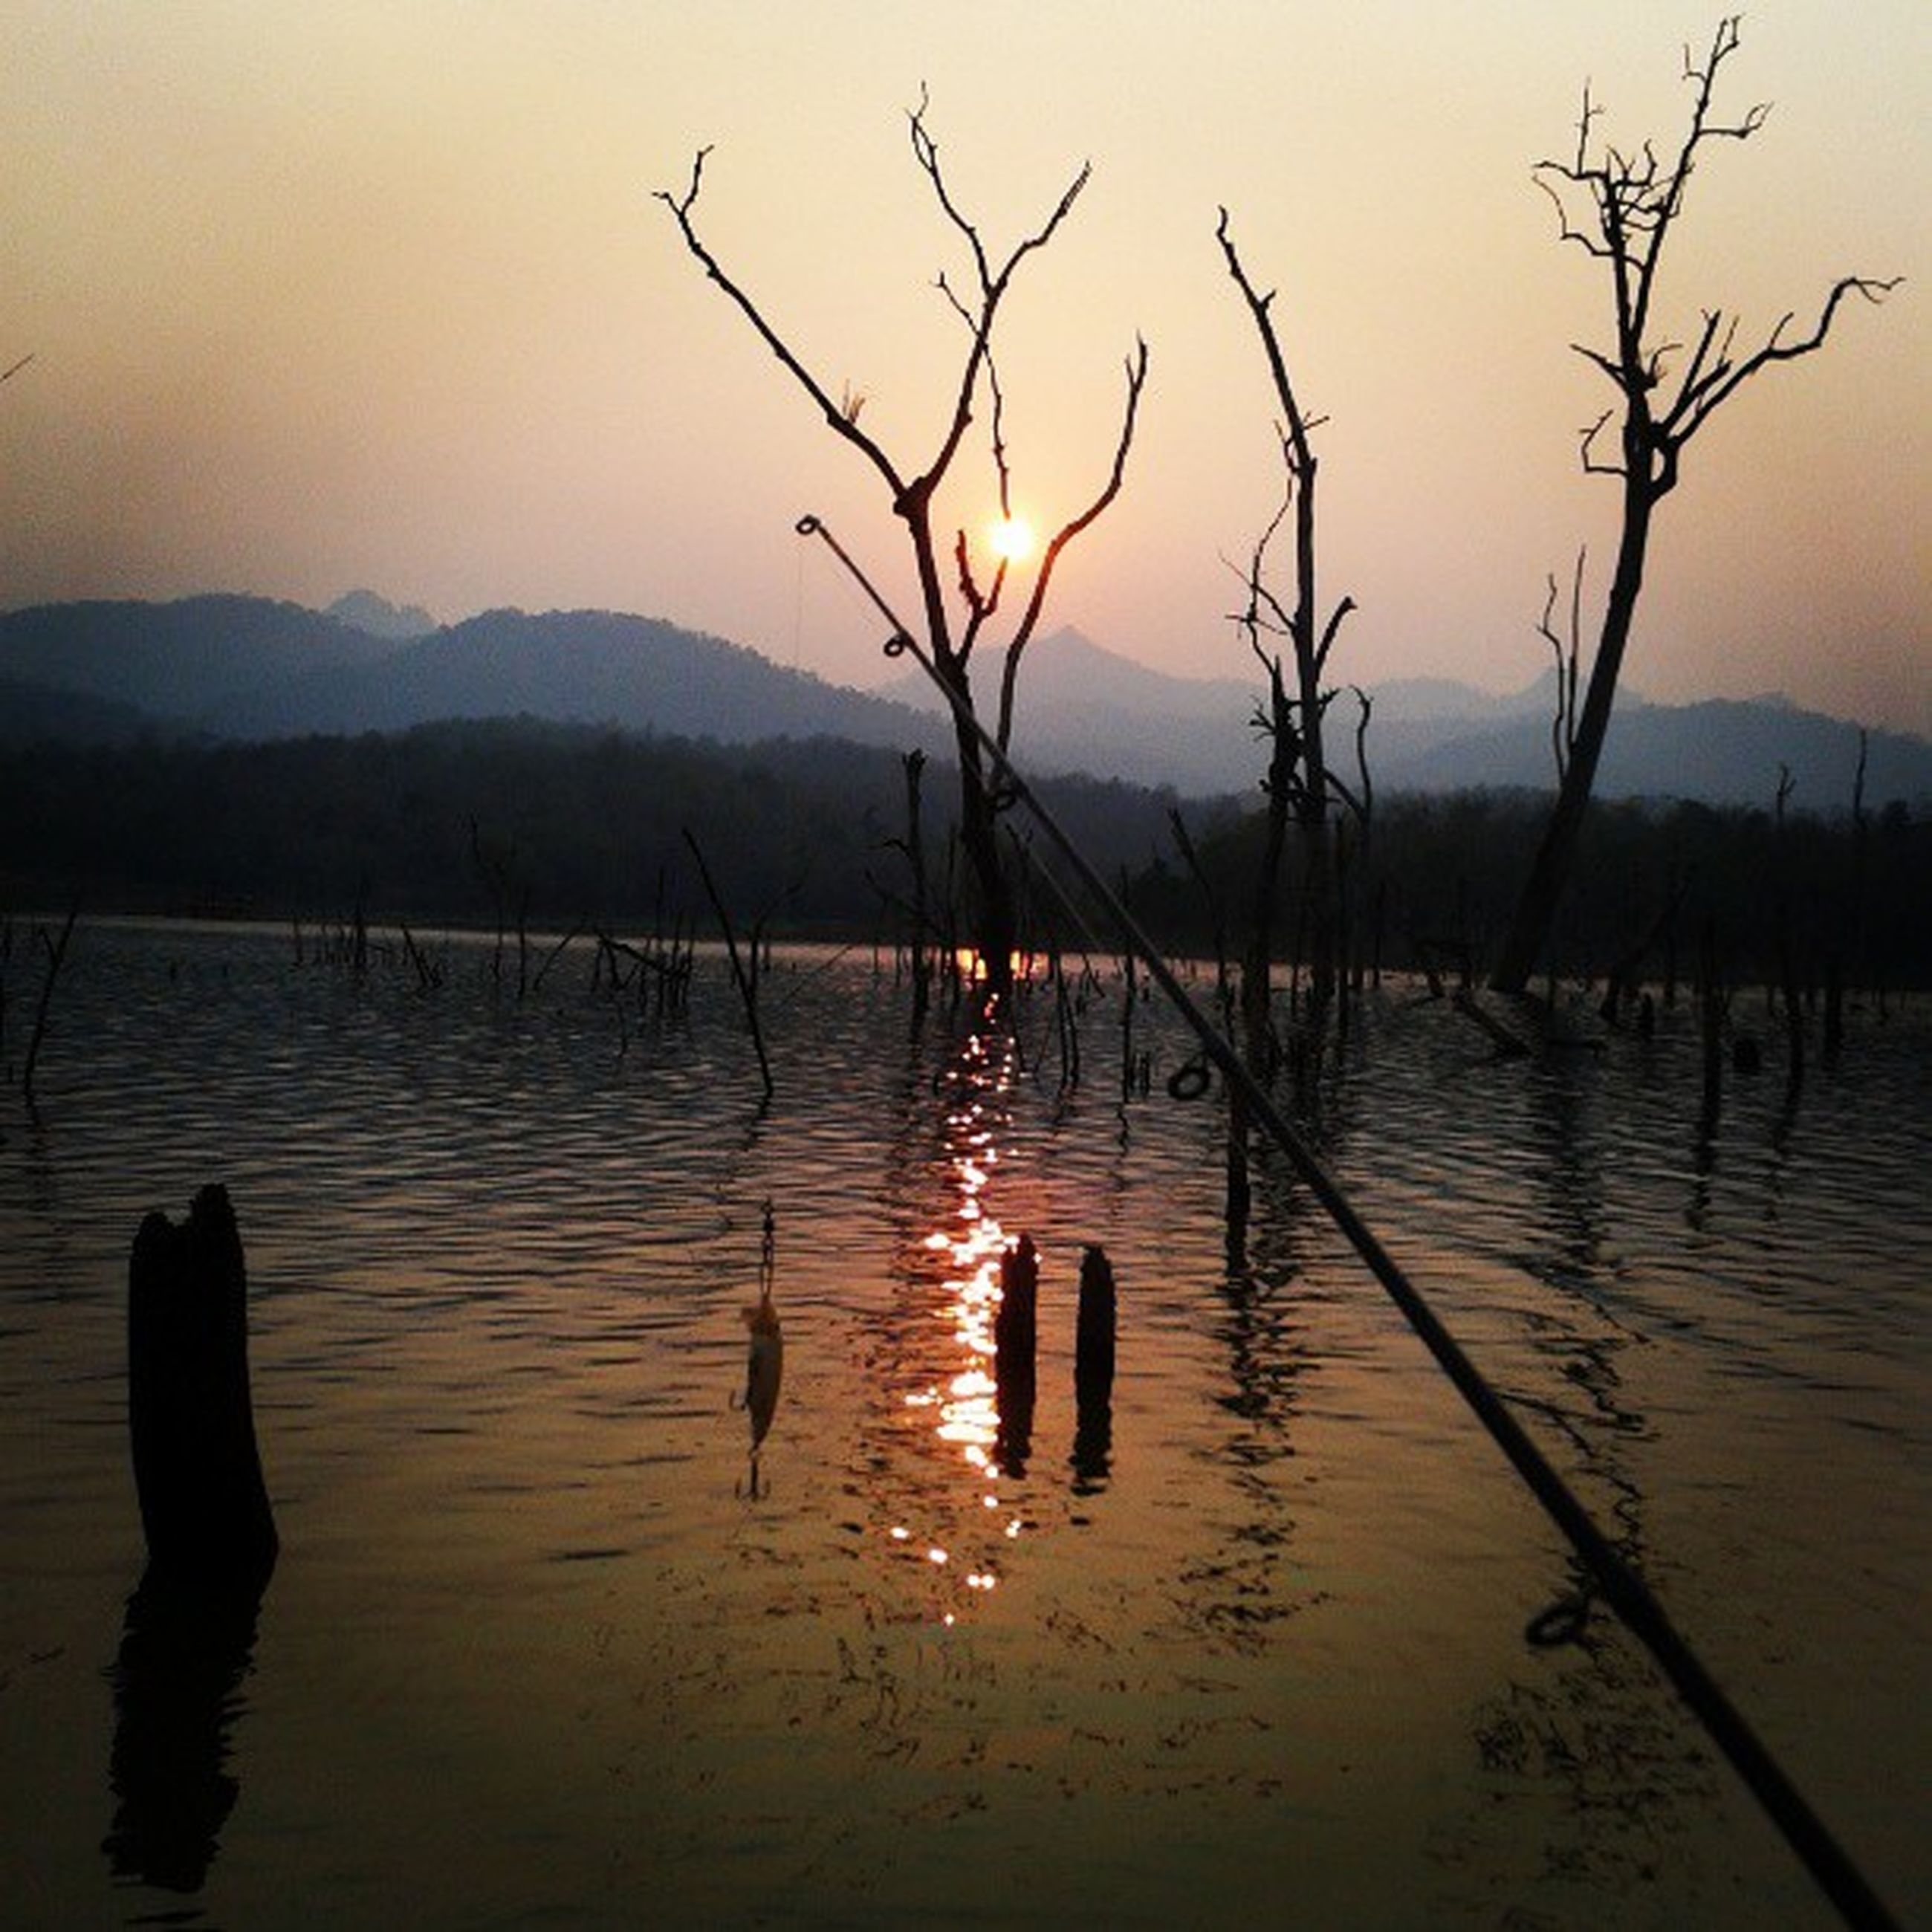 water, tranquil scene, tranquility, lake, sunset, reflection, scenics, silhouette, beauty in nature, bare tree, mountain, nature, waterfront, branch, sky, idyllic, mountain range, dusk, tree, rippled